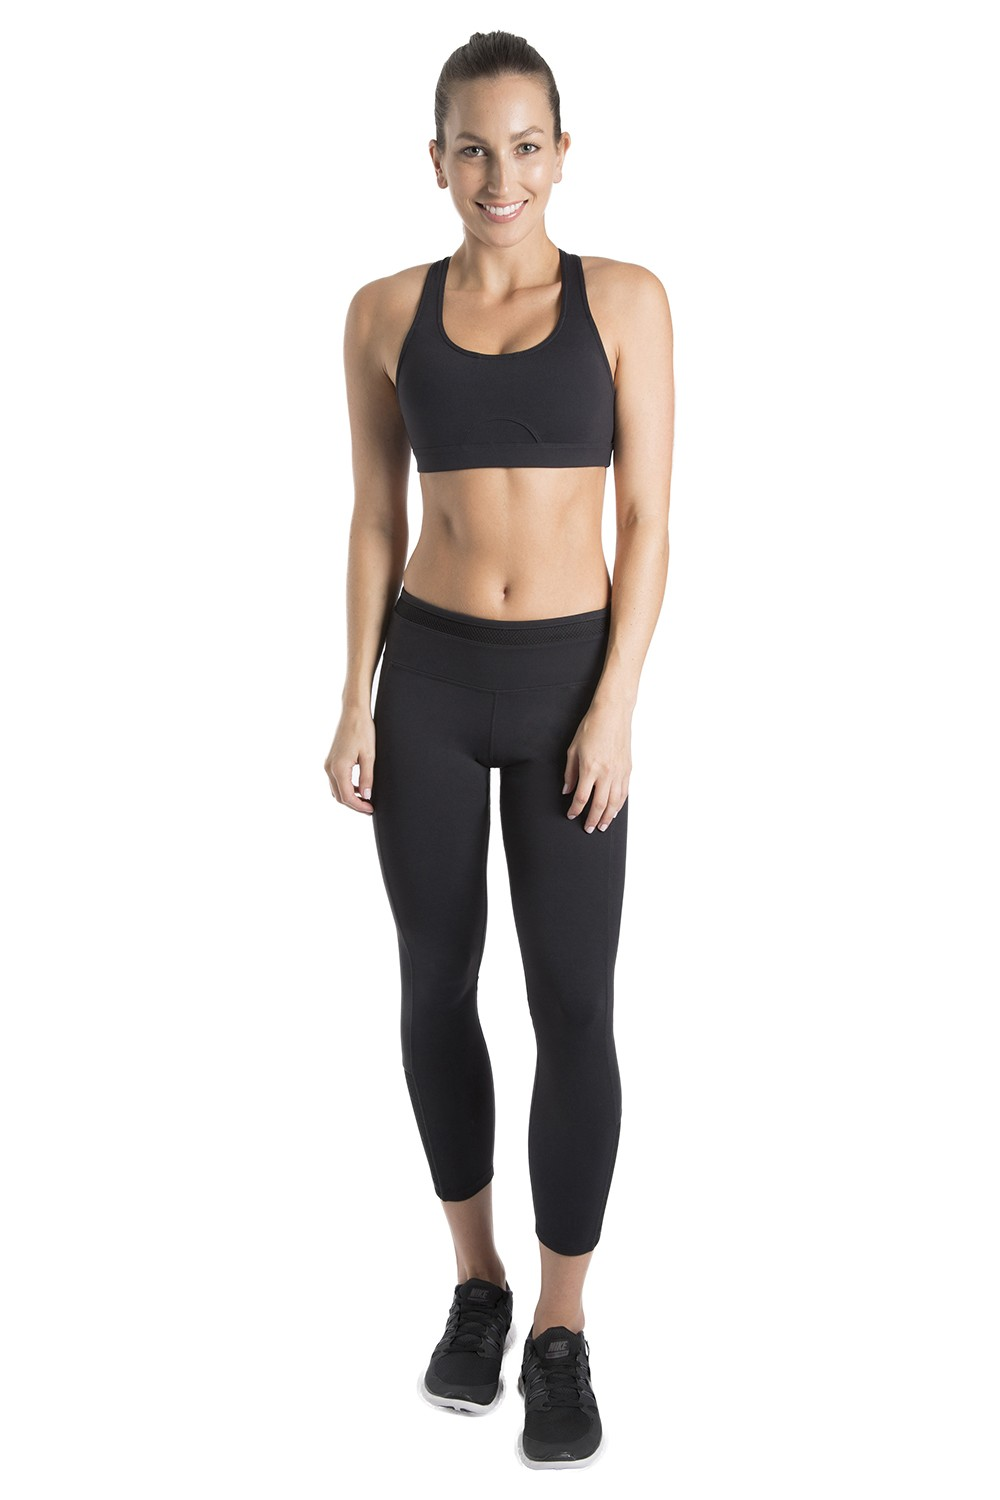 Mesh Trim 7/8 Leggings Women's Bottoms